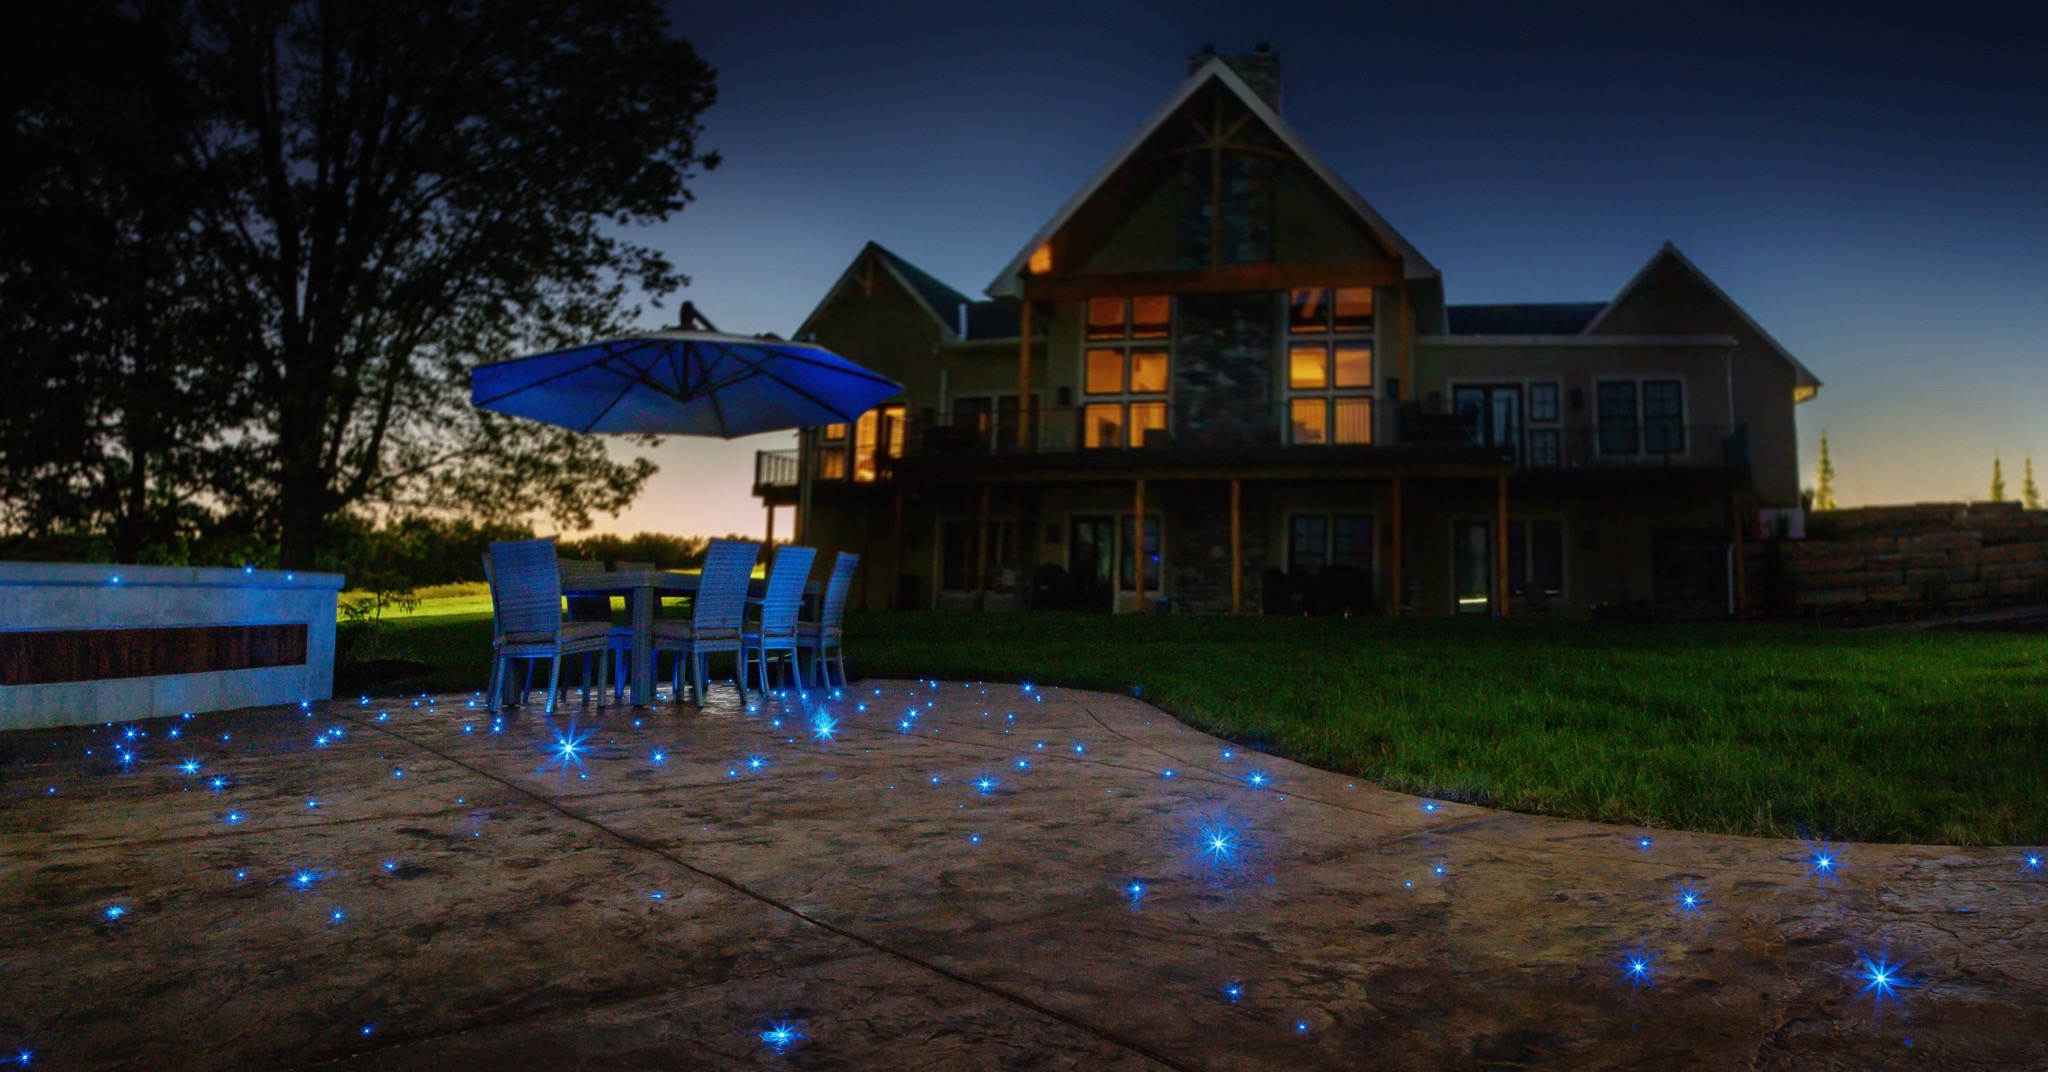 Fiber optics supplied by Fiber Creations and installed by Fleshman Construction, Inc.